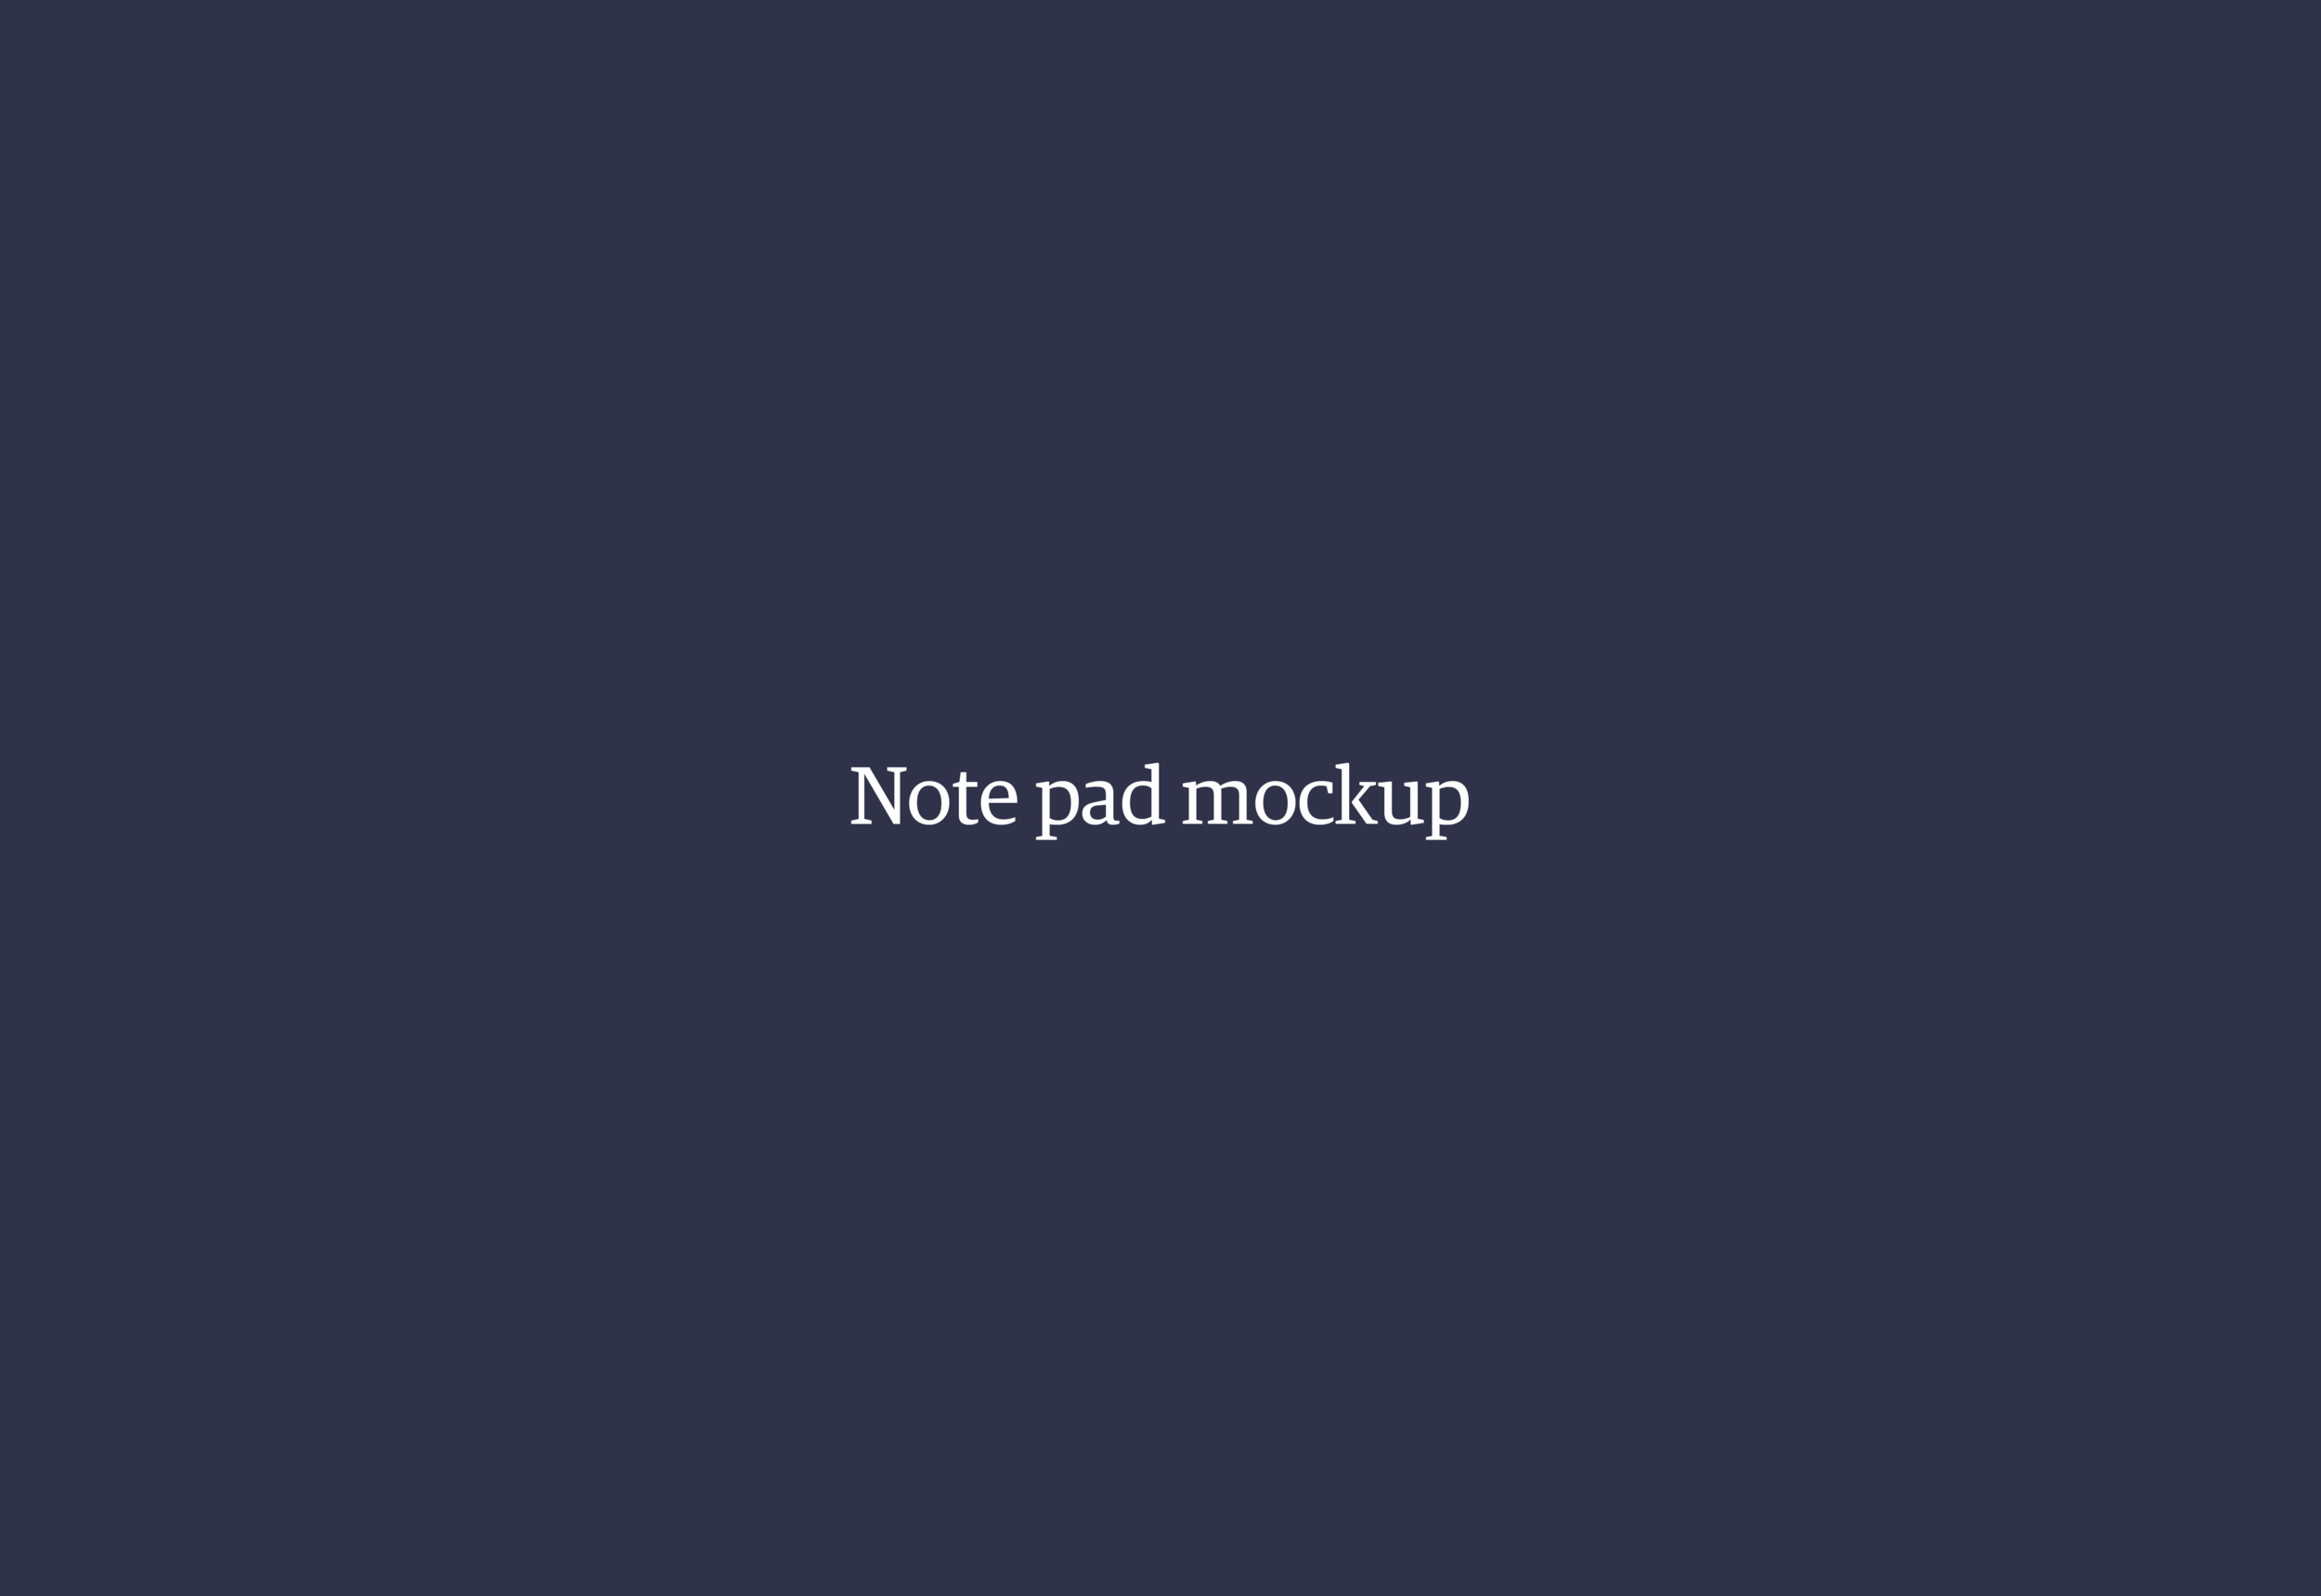 Opfield_CaseStudy_Notepad.png